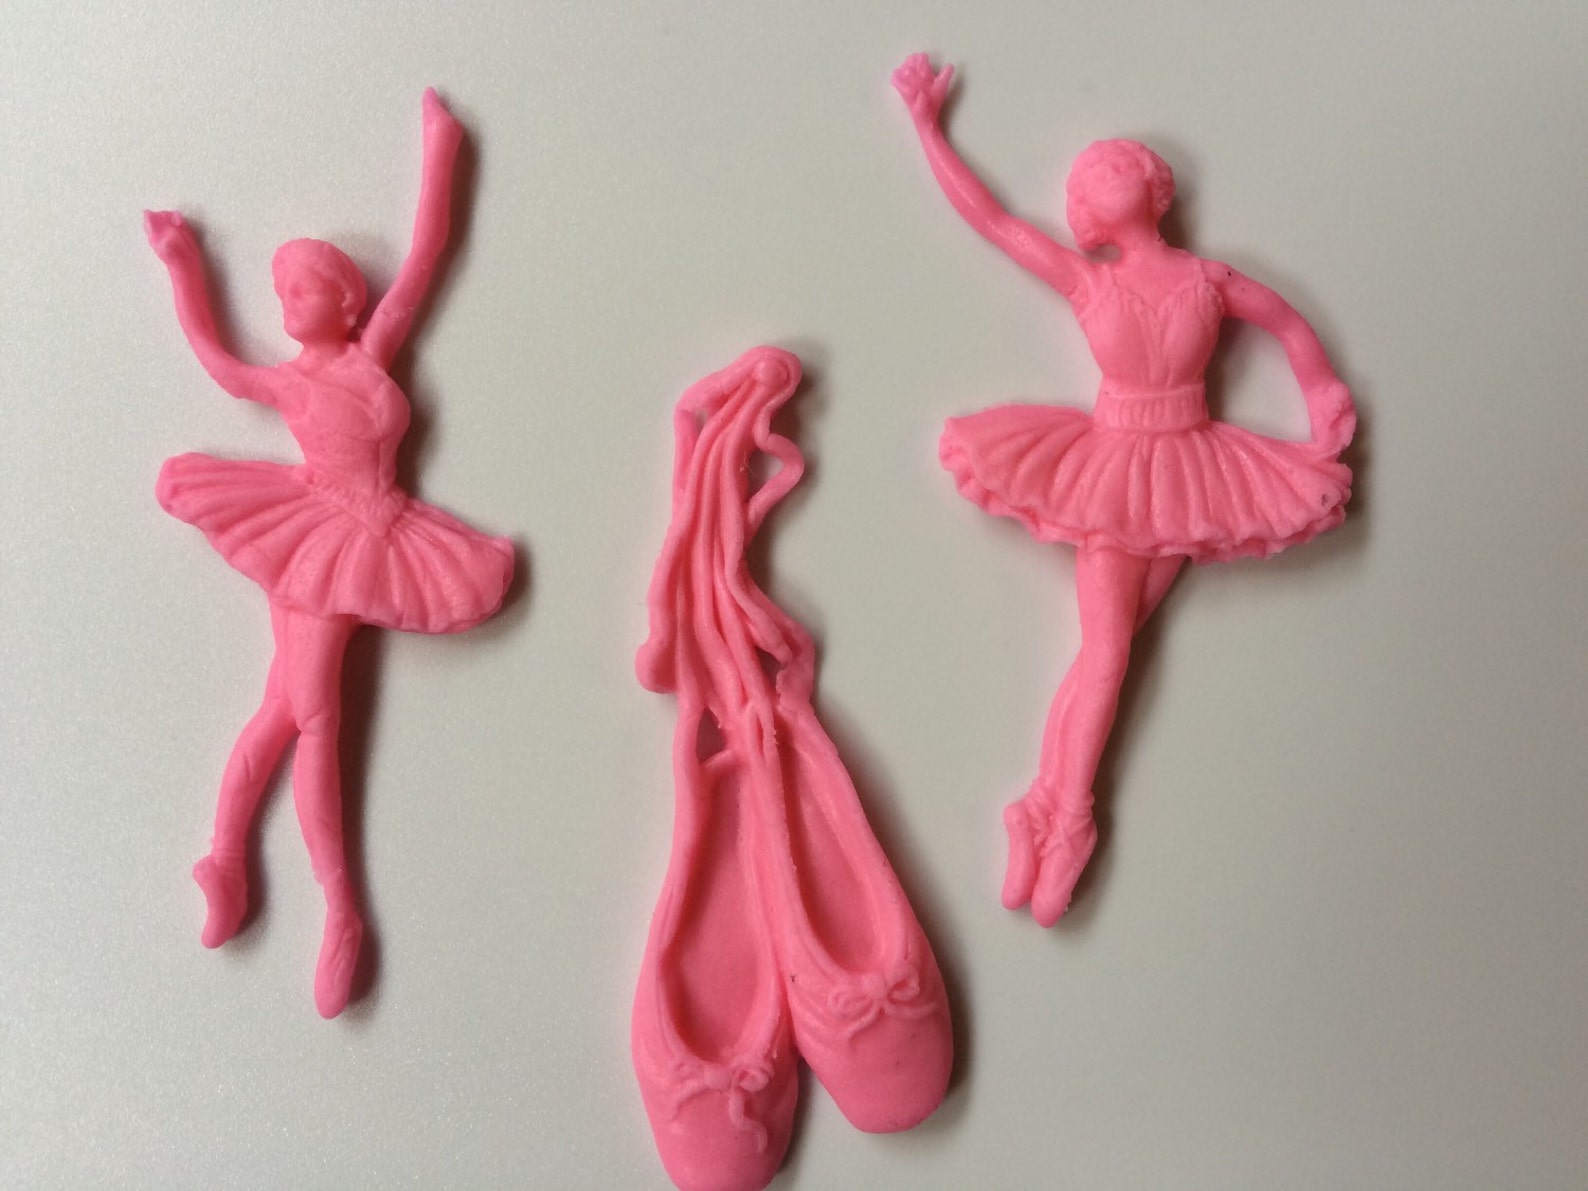 ballerina cake topper 12pcs ballet cupcake toppers edible fondant shoes cookie decorations birthday theme party favors